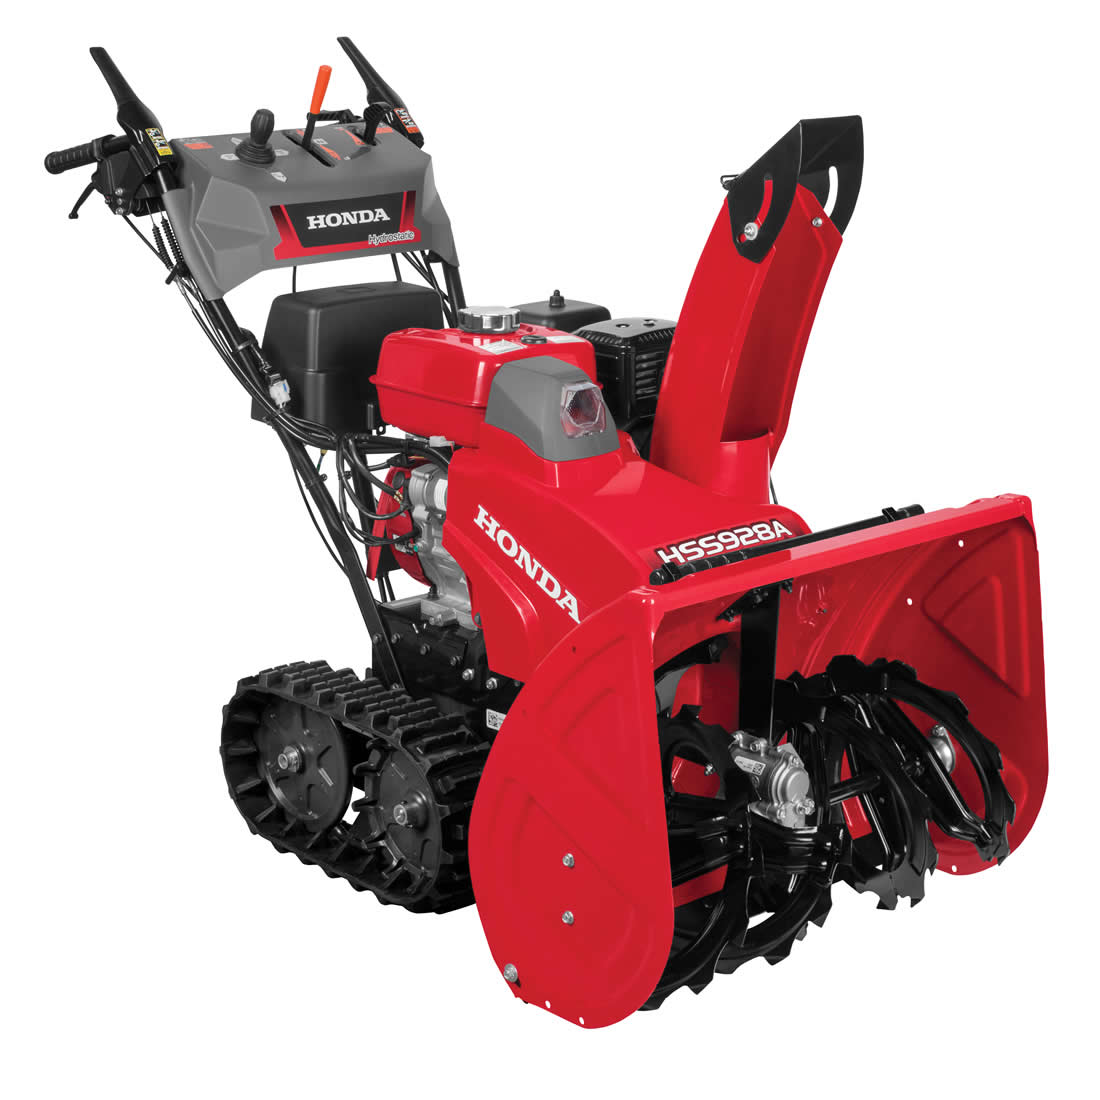 Picture of Honda HSS928AATD Snow Blower, Gas, 270 cc Engine Displacement, 4-Cycle OHV Engine, 2 -Stage, 52 ft Throw